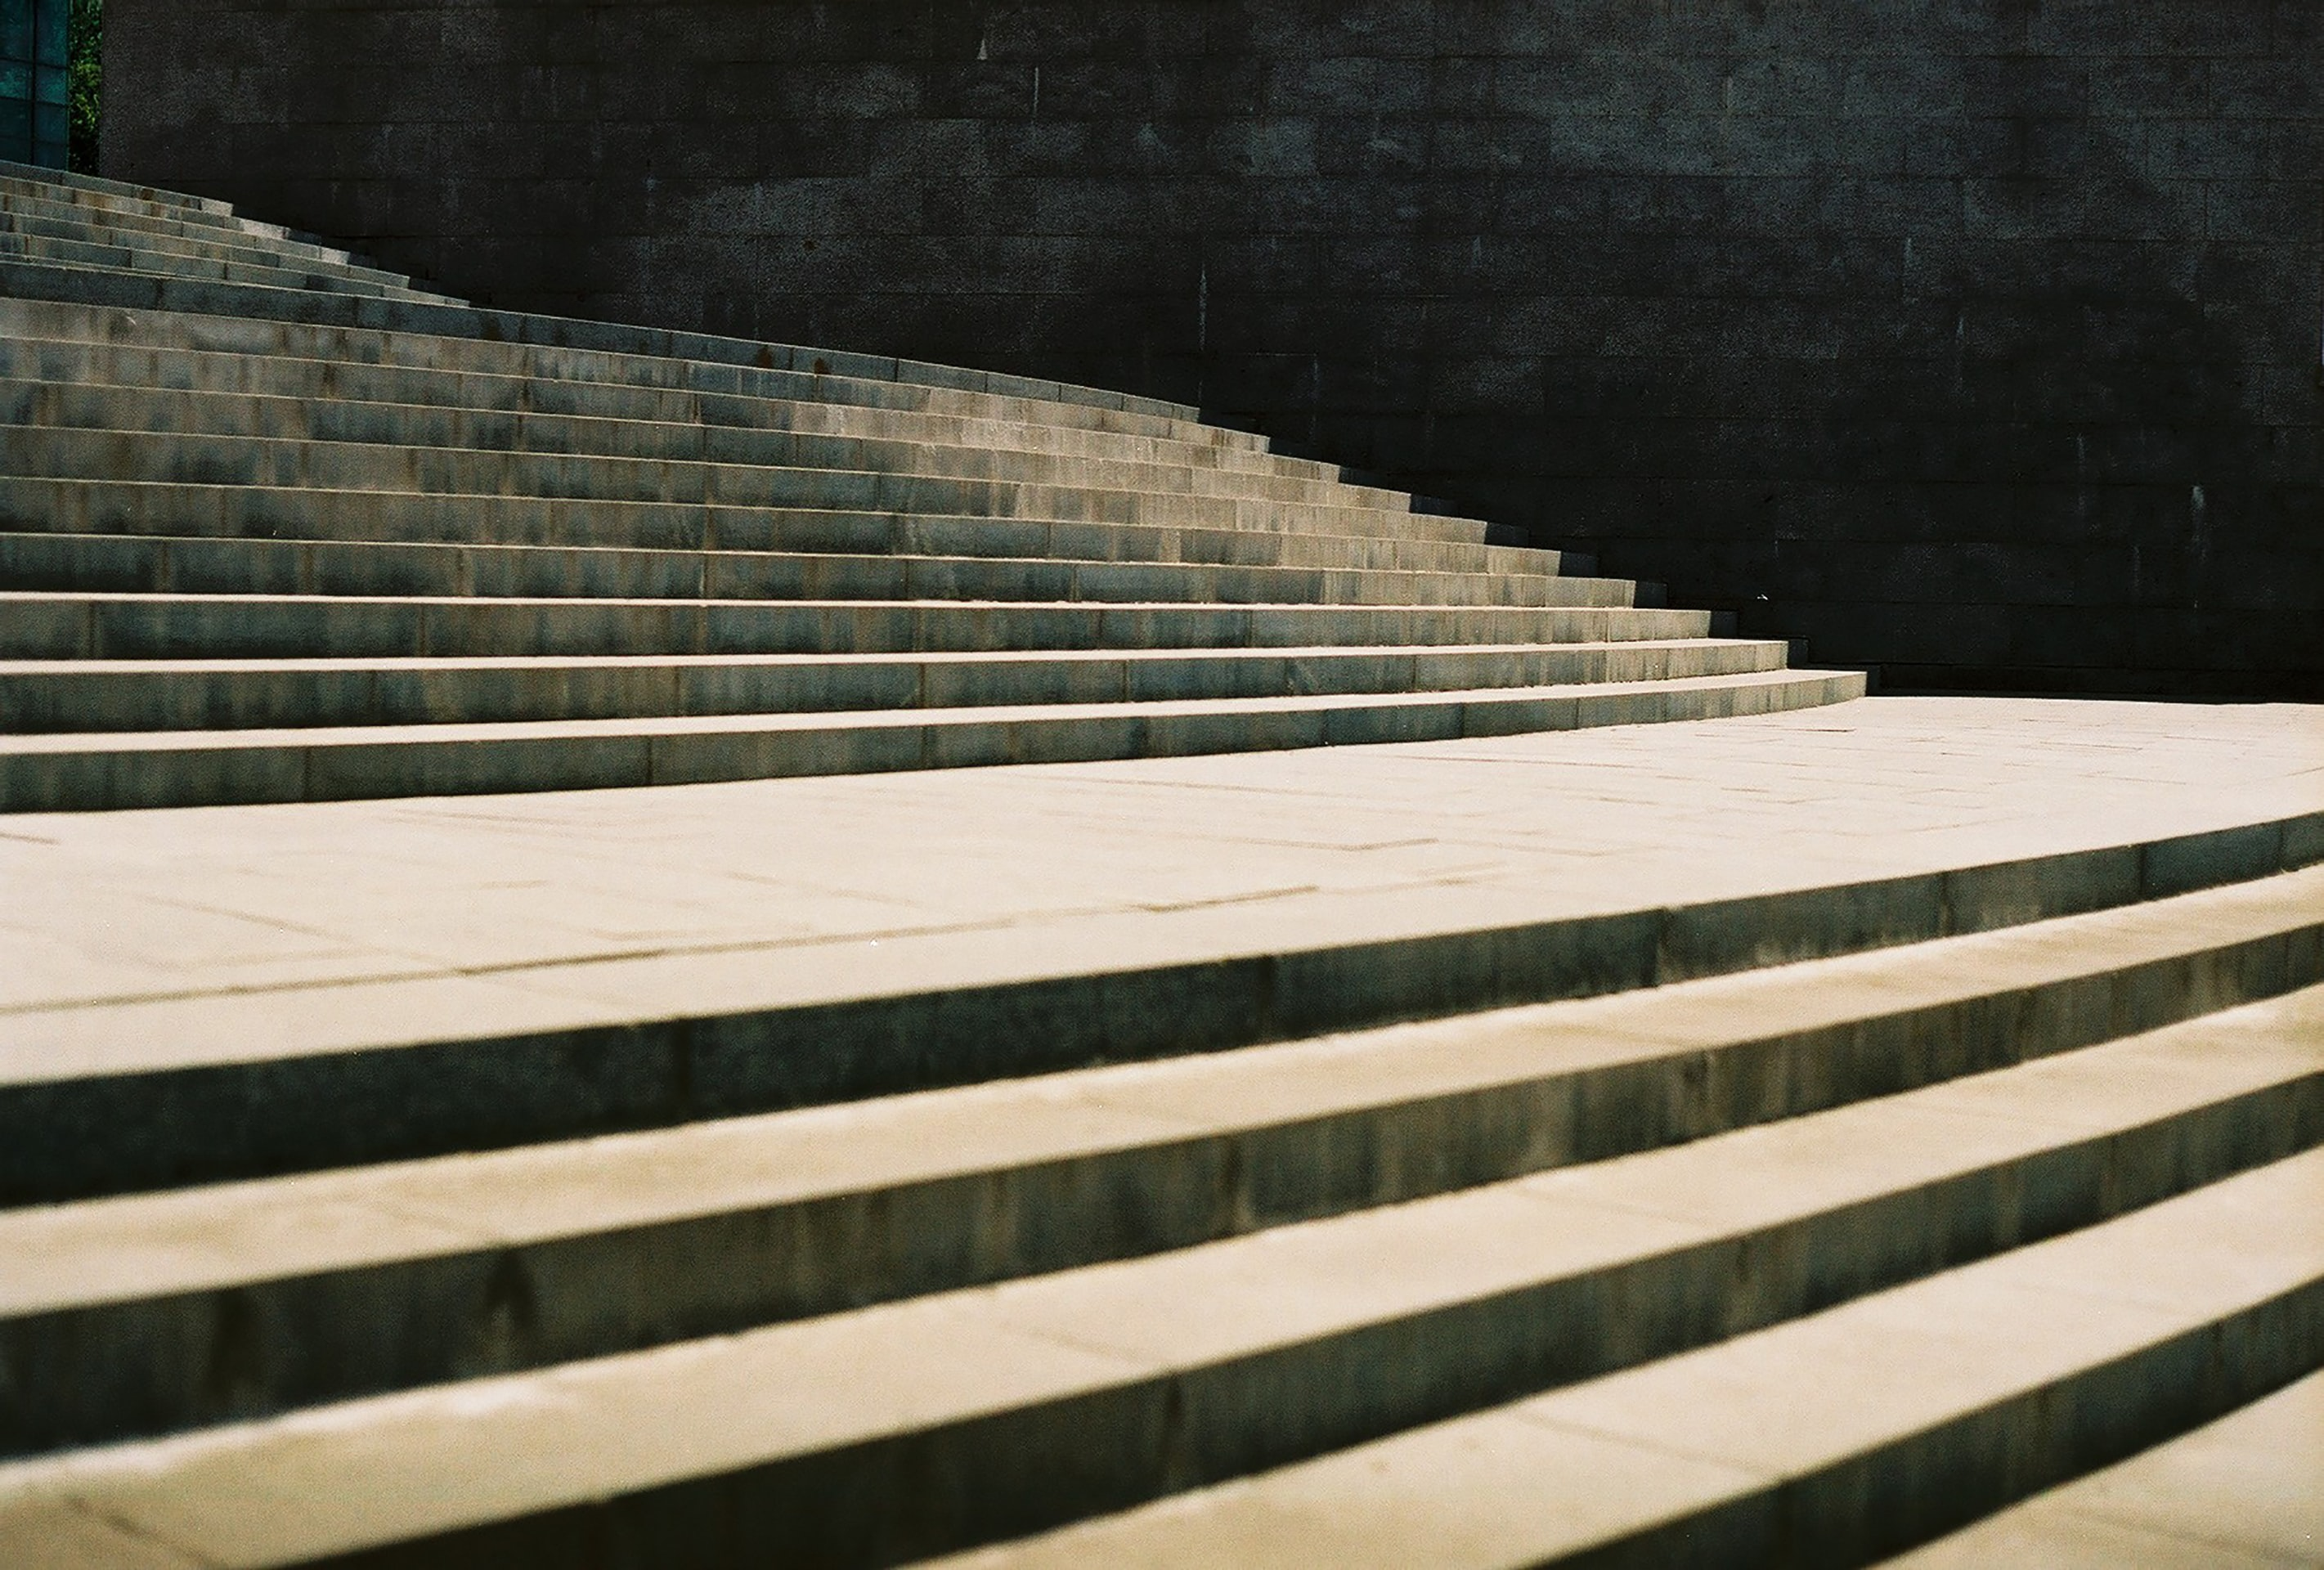 gray concrete stair during daytime